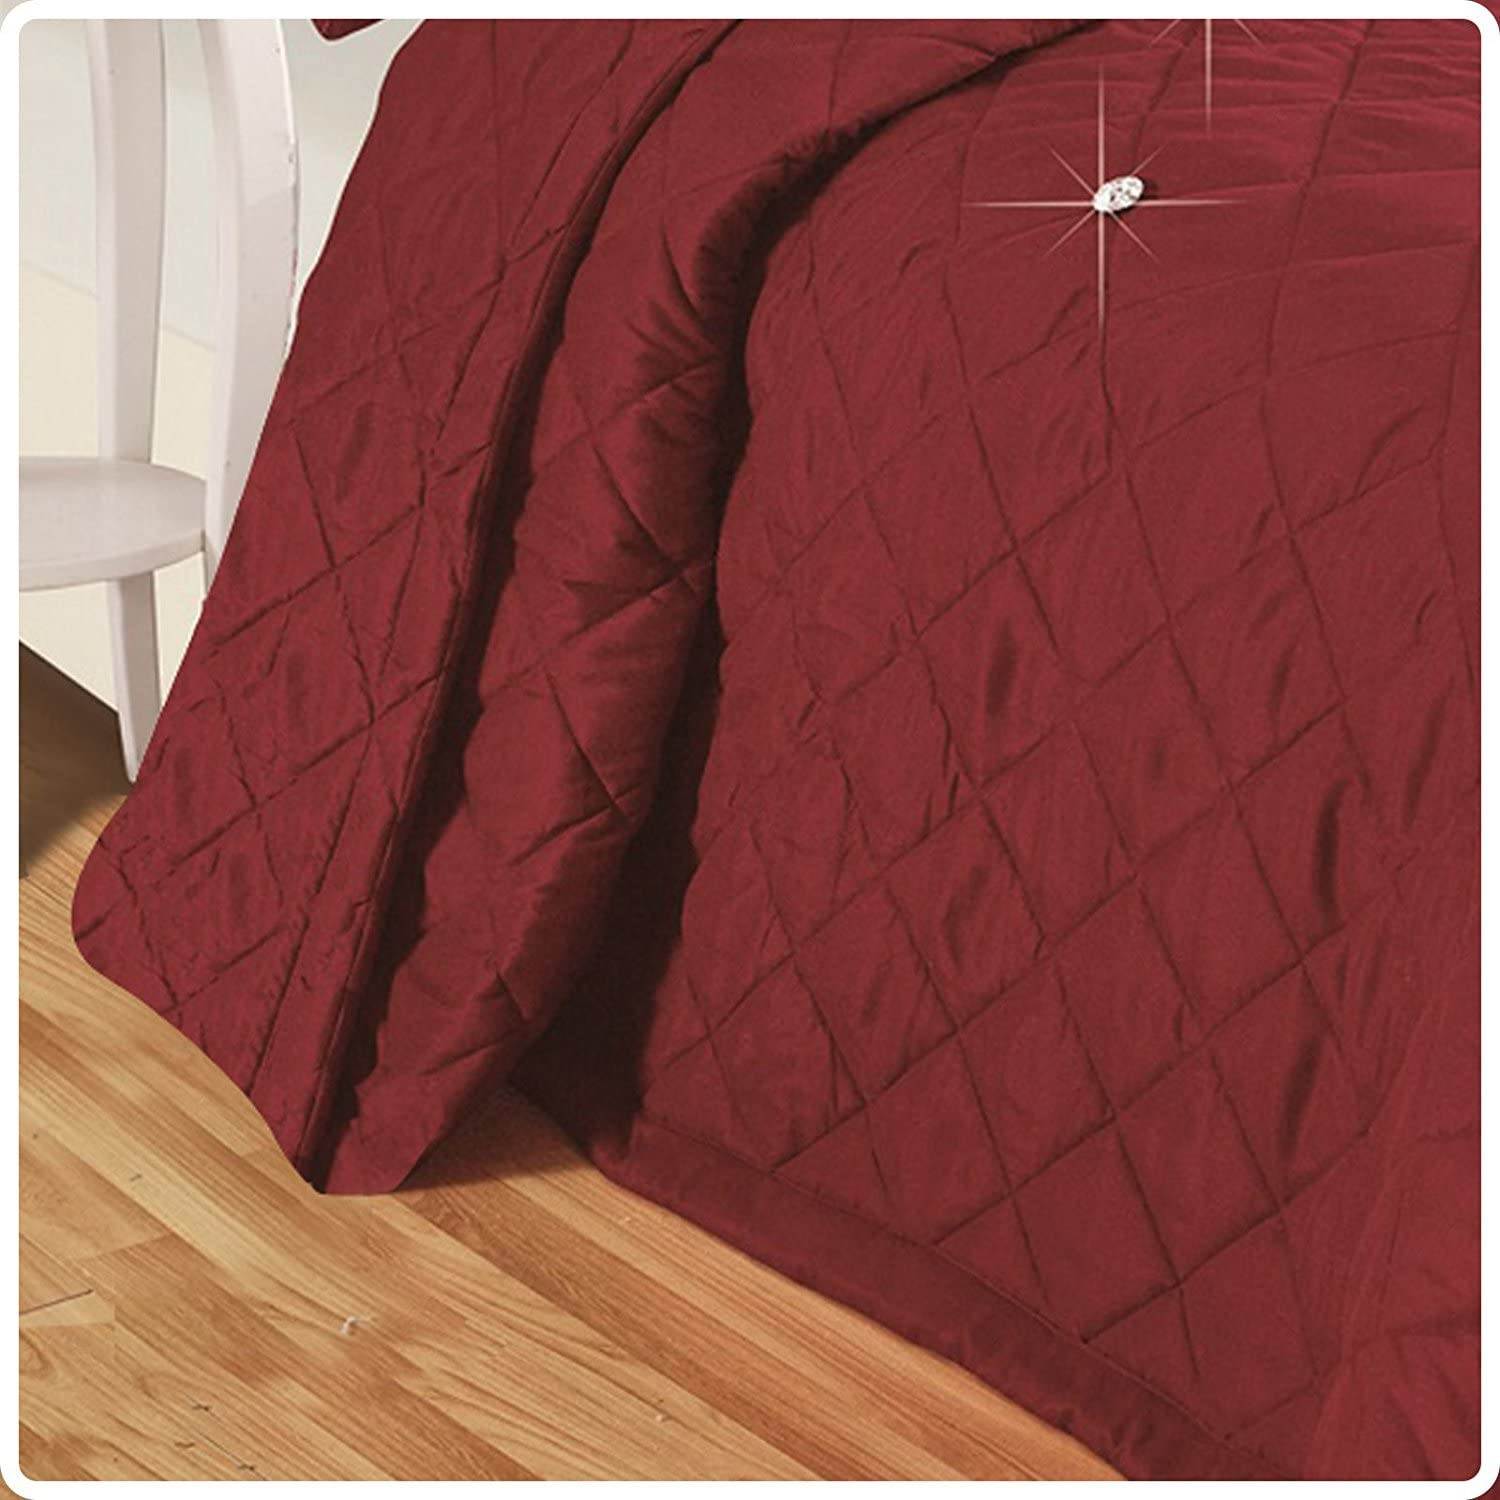 Impero Romano 5 Piece Reversible Quilted Diamond Stitched Bedspread Comforter Coverlet Throw 100/% Polyester Microfibre Bed Set With Matching Decorative Filled Cushion Double, Black